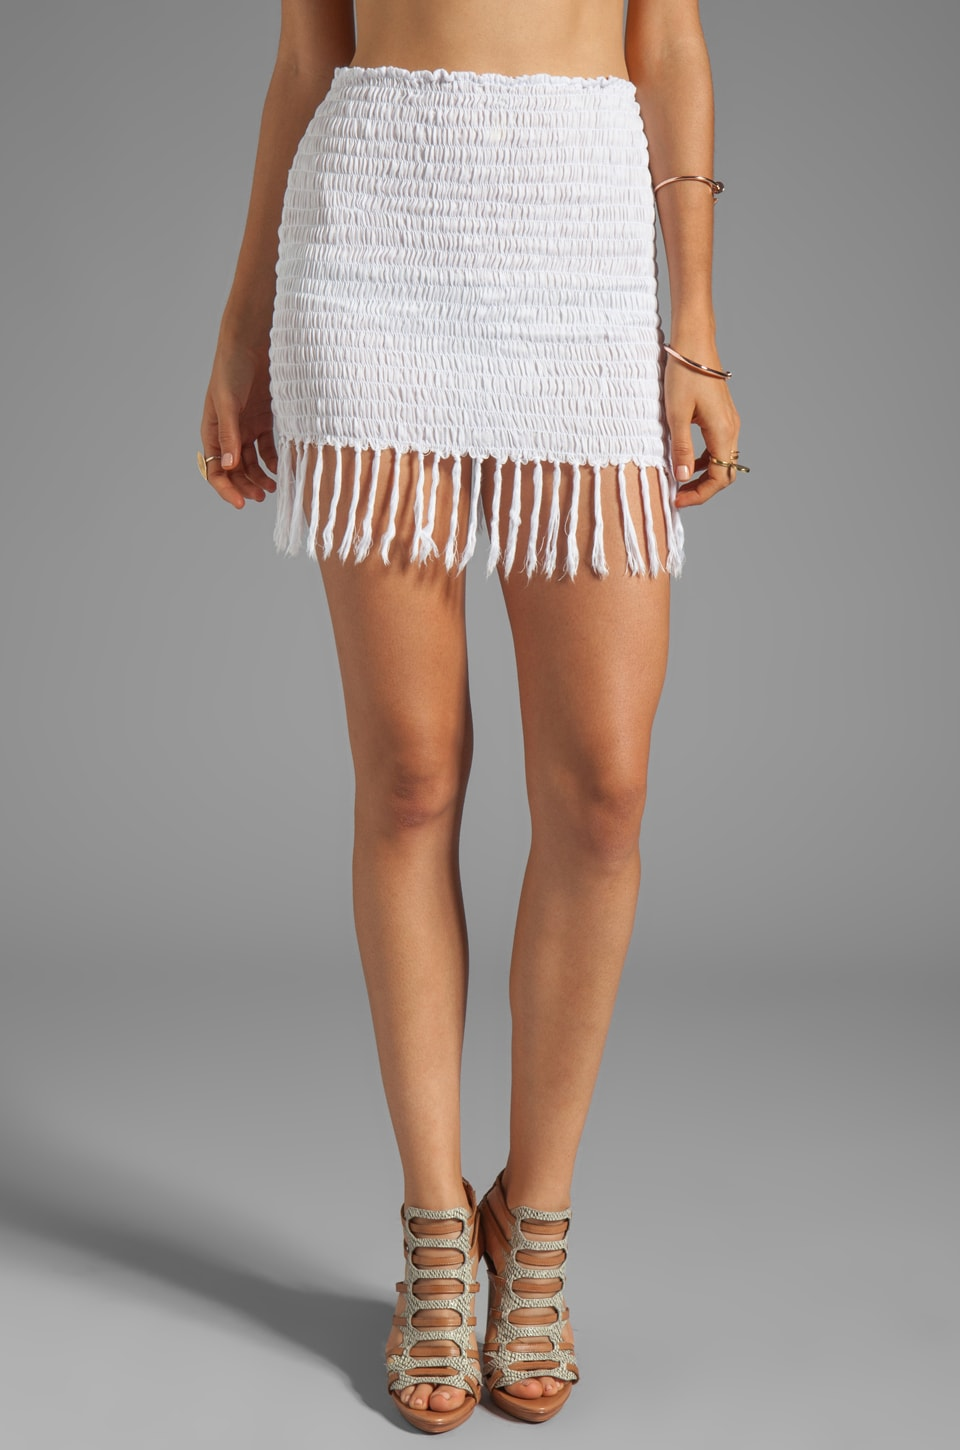 Indah Bronte Smock Fringe Mini Skirt in White